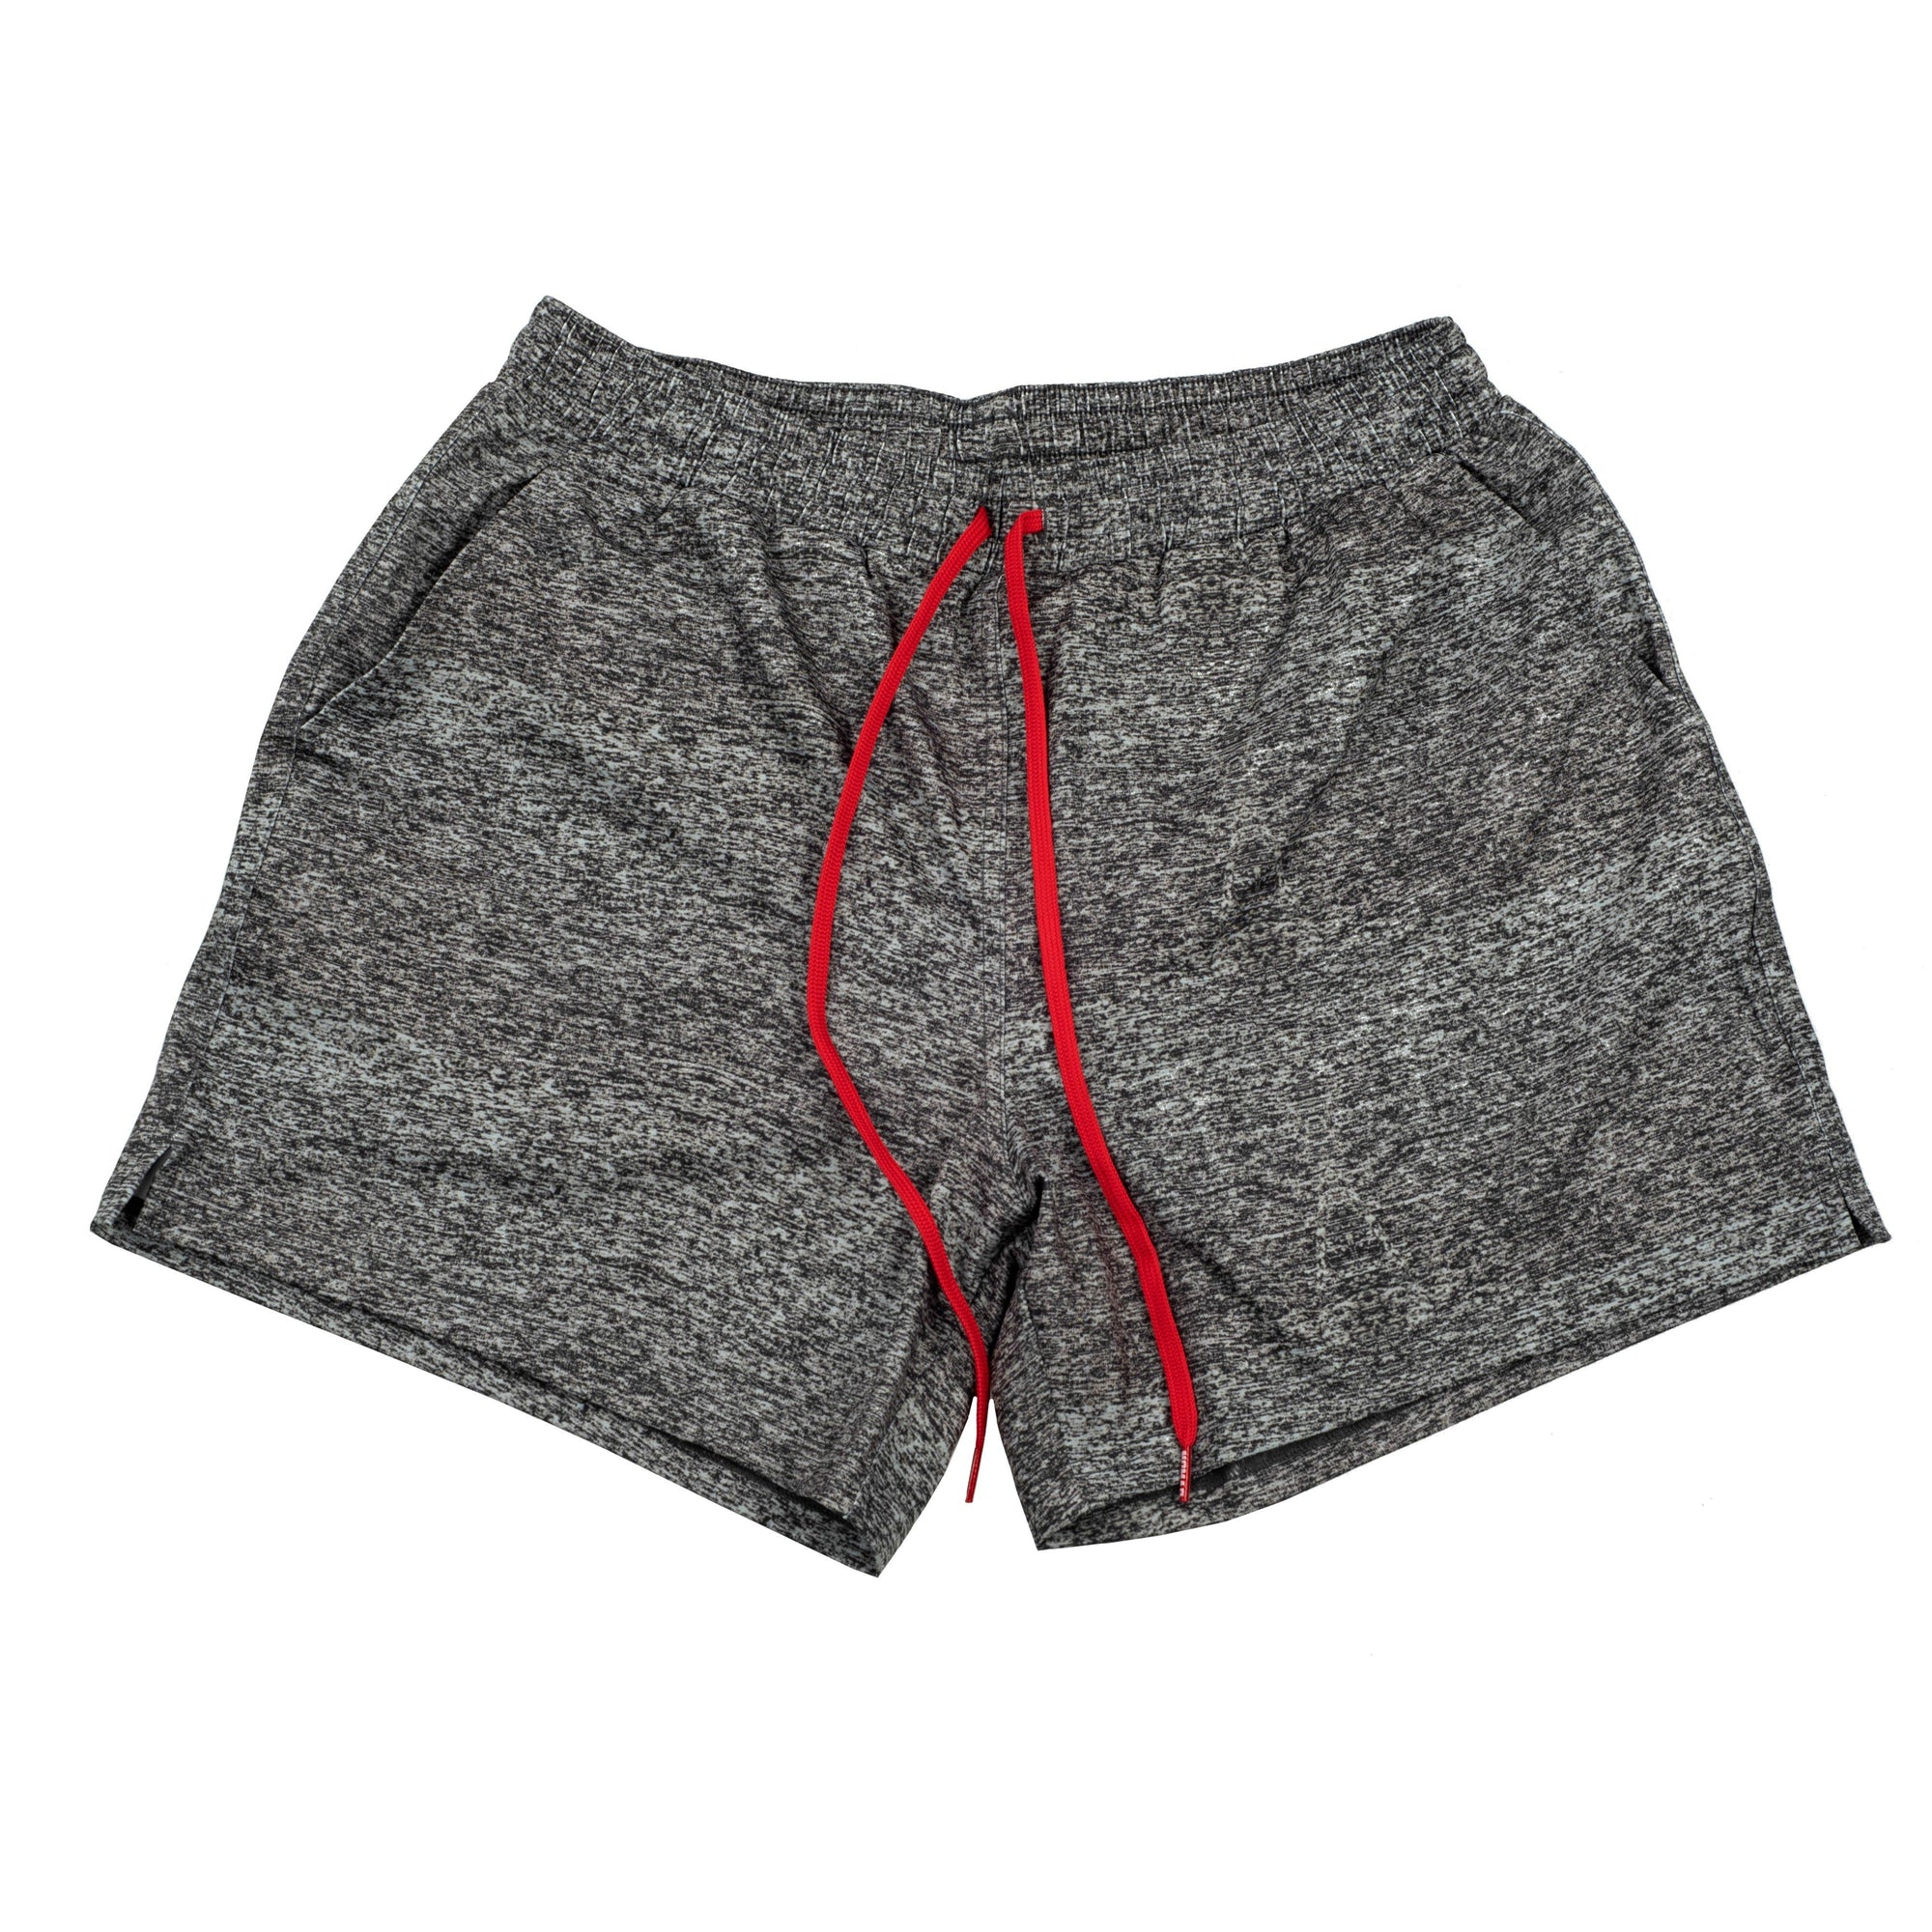 Swim Trunks - Heathered Charcoal